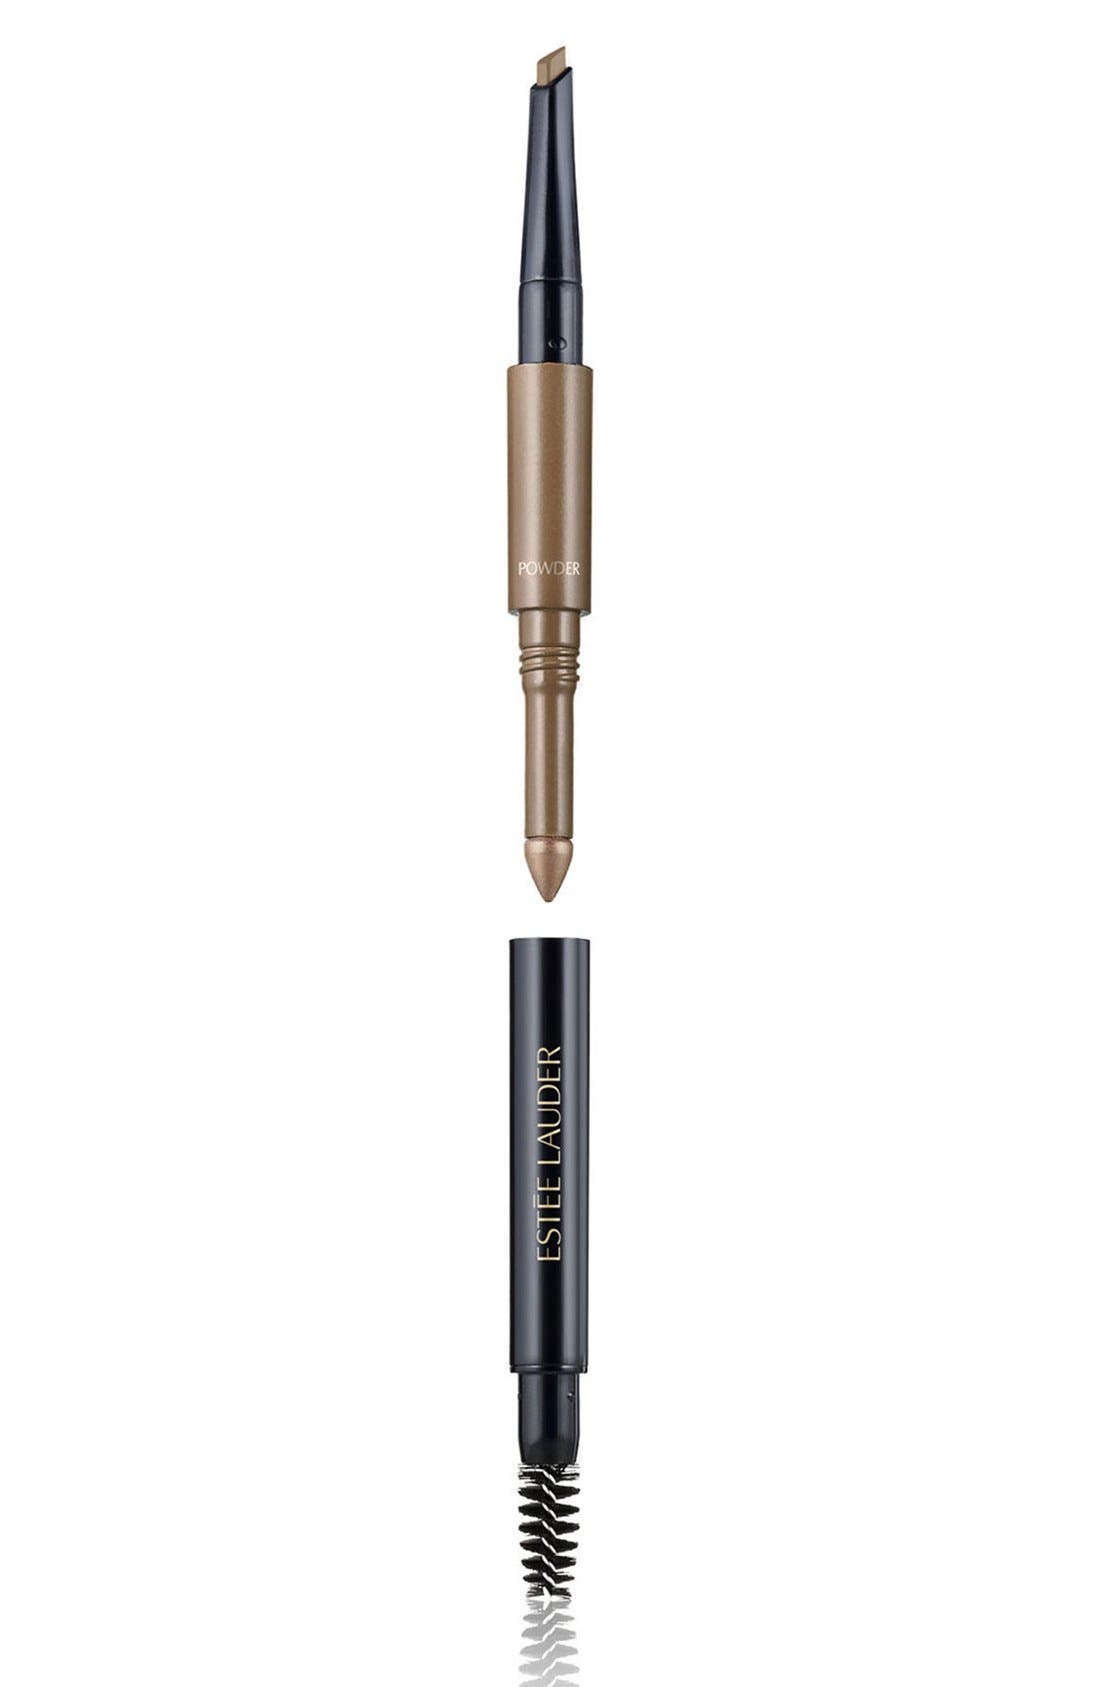 Estée Lauder The Brow Multitasker 3-in-1 Brow Tool